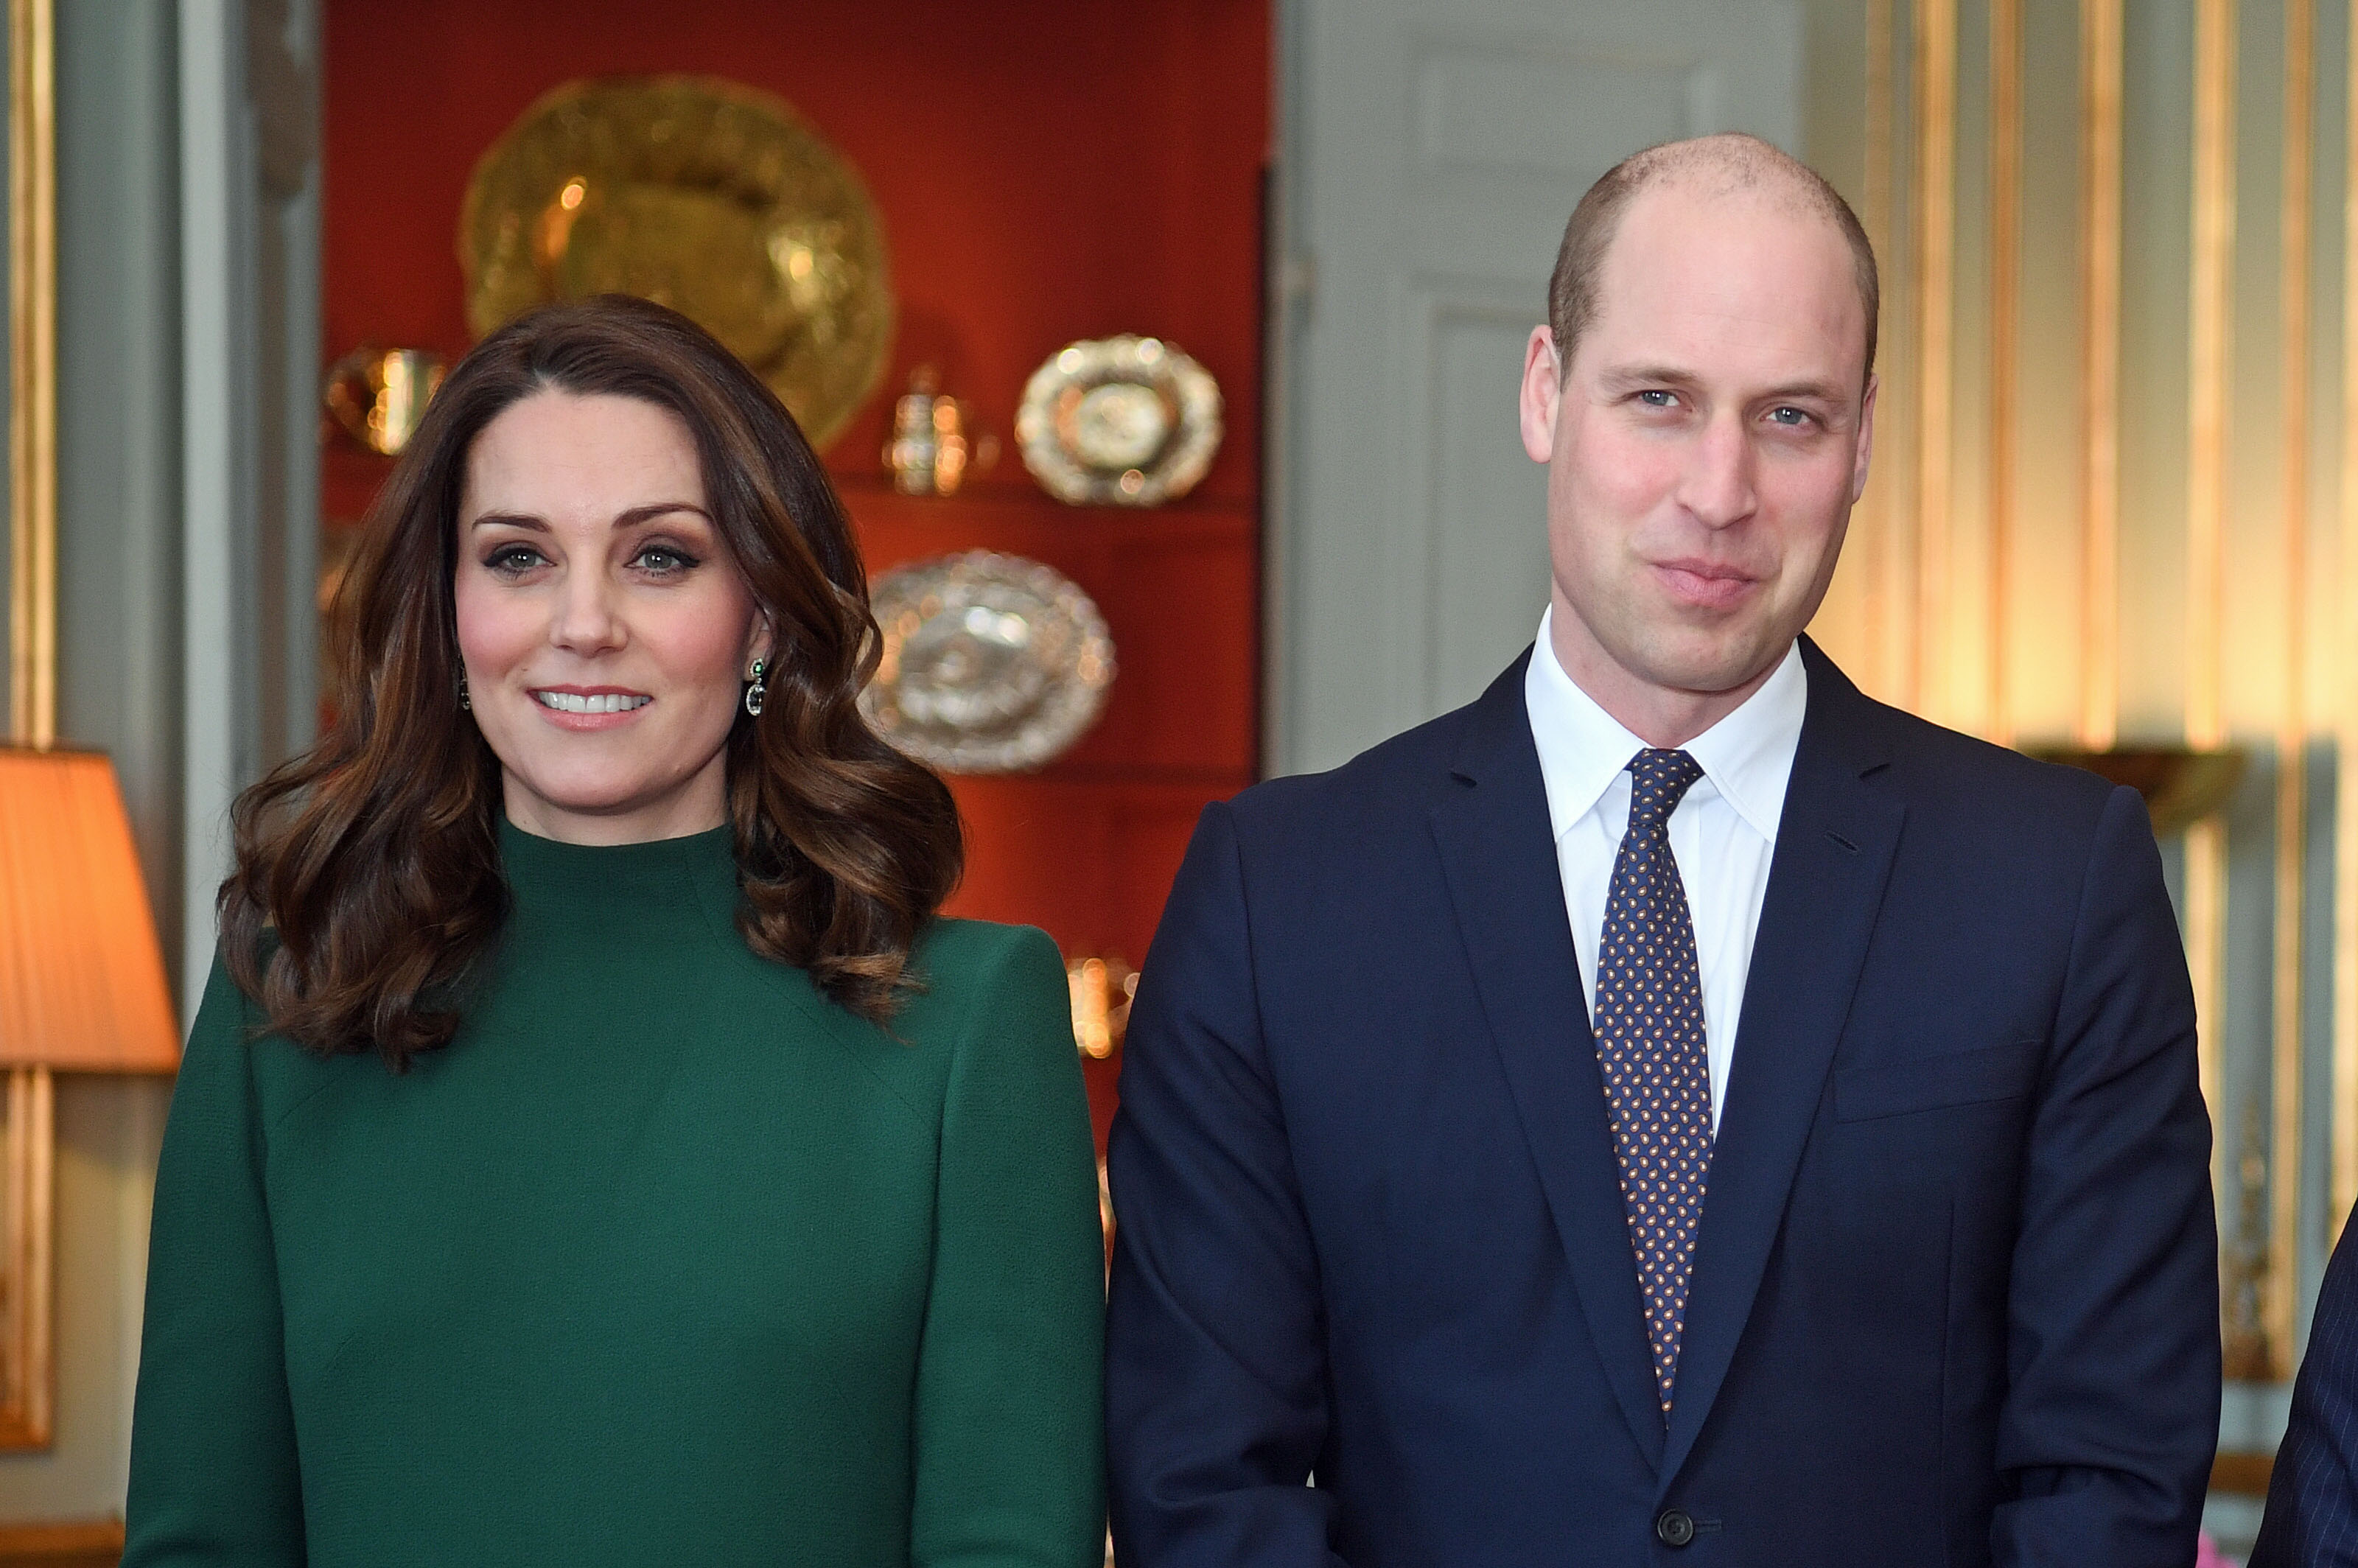 Kate Middleton and Prince William (Source: Getty Images)